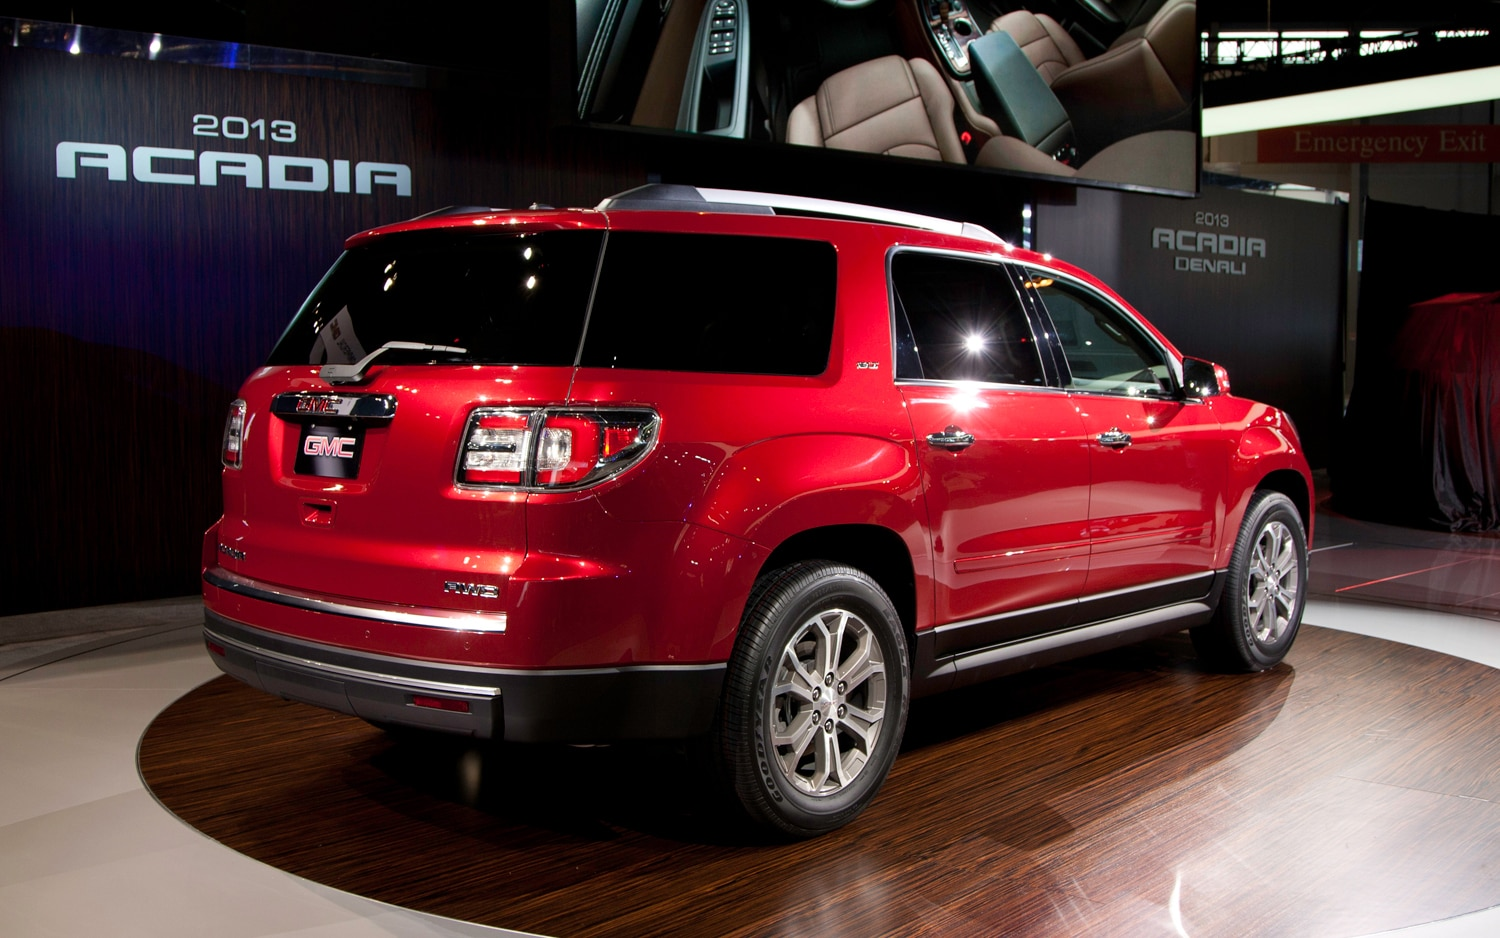 2013 gmc acadia first look 2012 chicago auto show automobile magazine. Black Bedroom Furniture Sets. Home Design Ideas